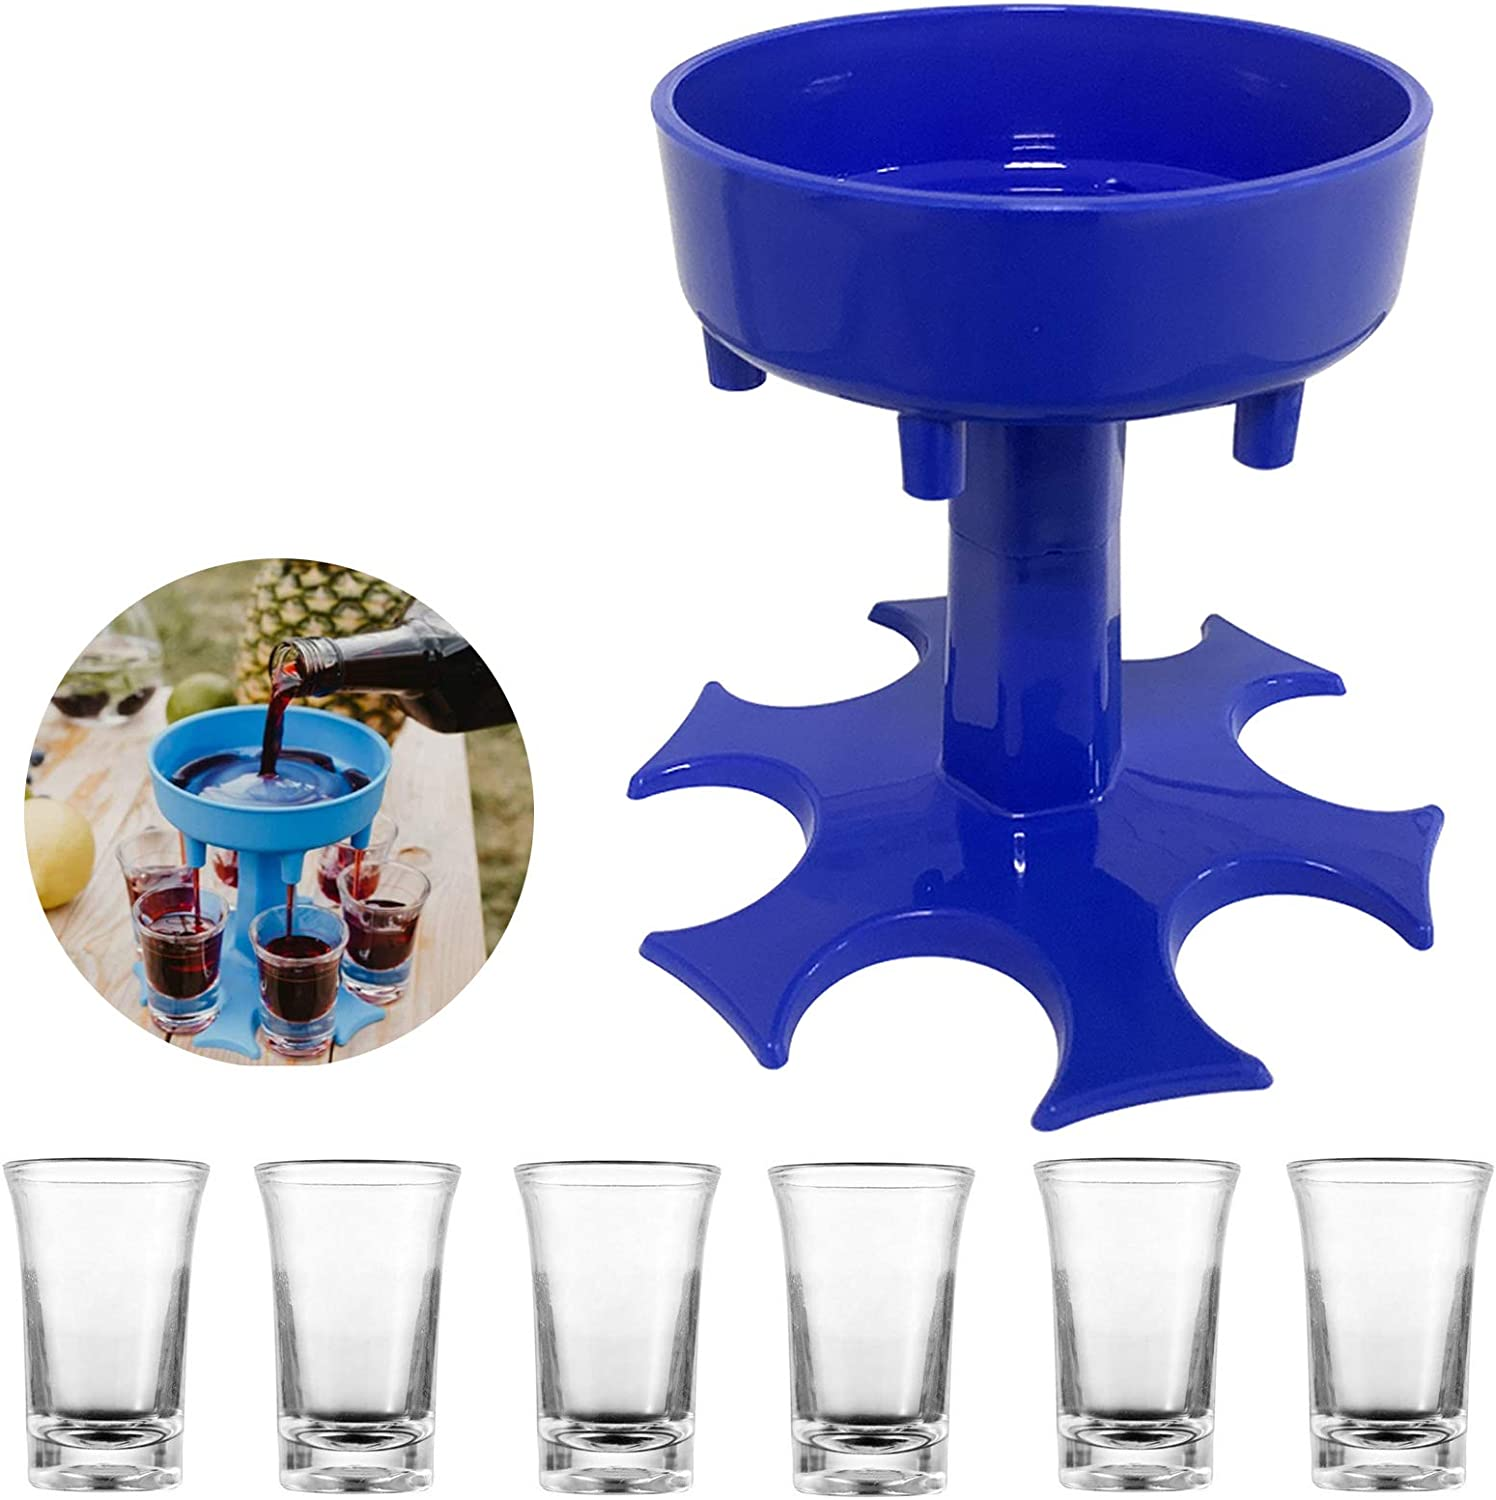 Shot Glass Dispenser with 6 Acrylic Cups,Shot Glass Dispenser and Holder, Bar Shot Dispenser, Cocktail Dispenser, For Bar Home Cocktail/Party (Blue)